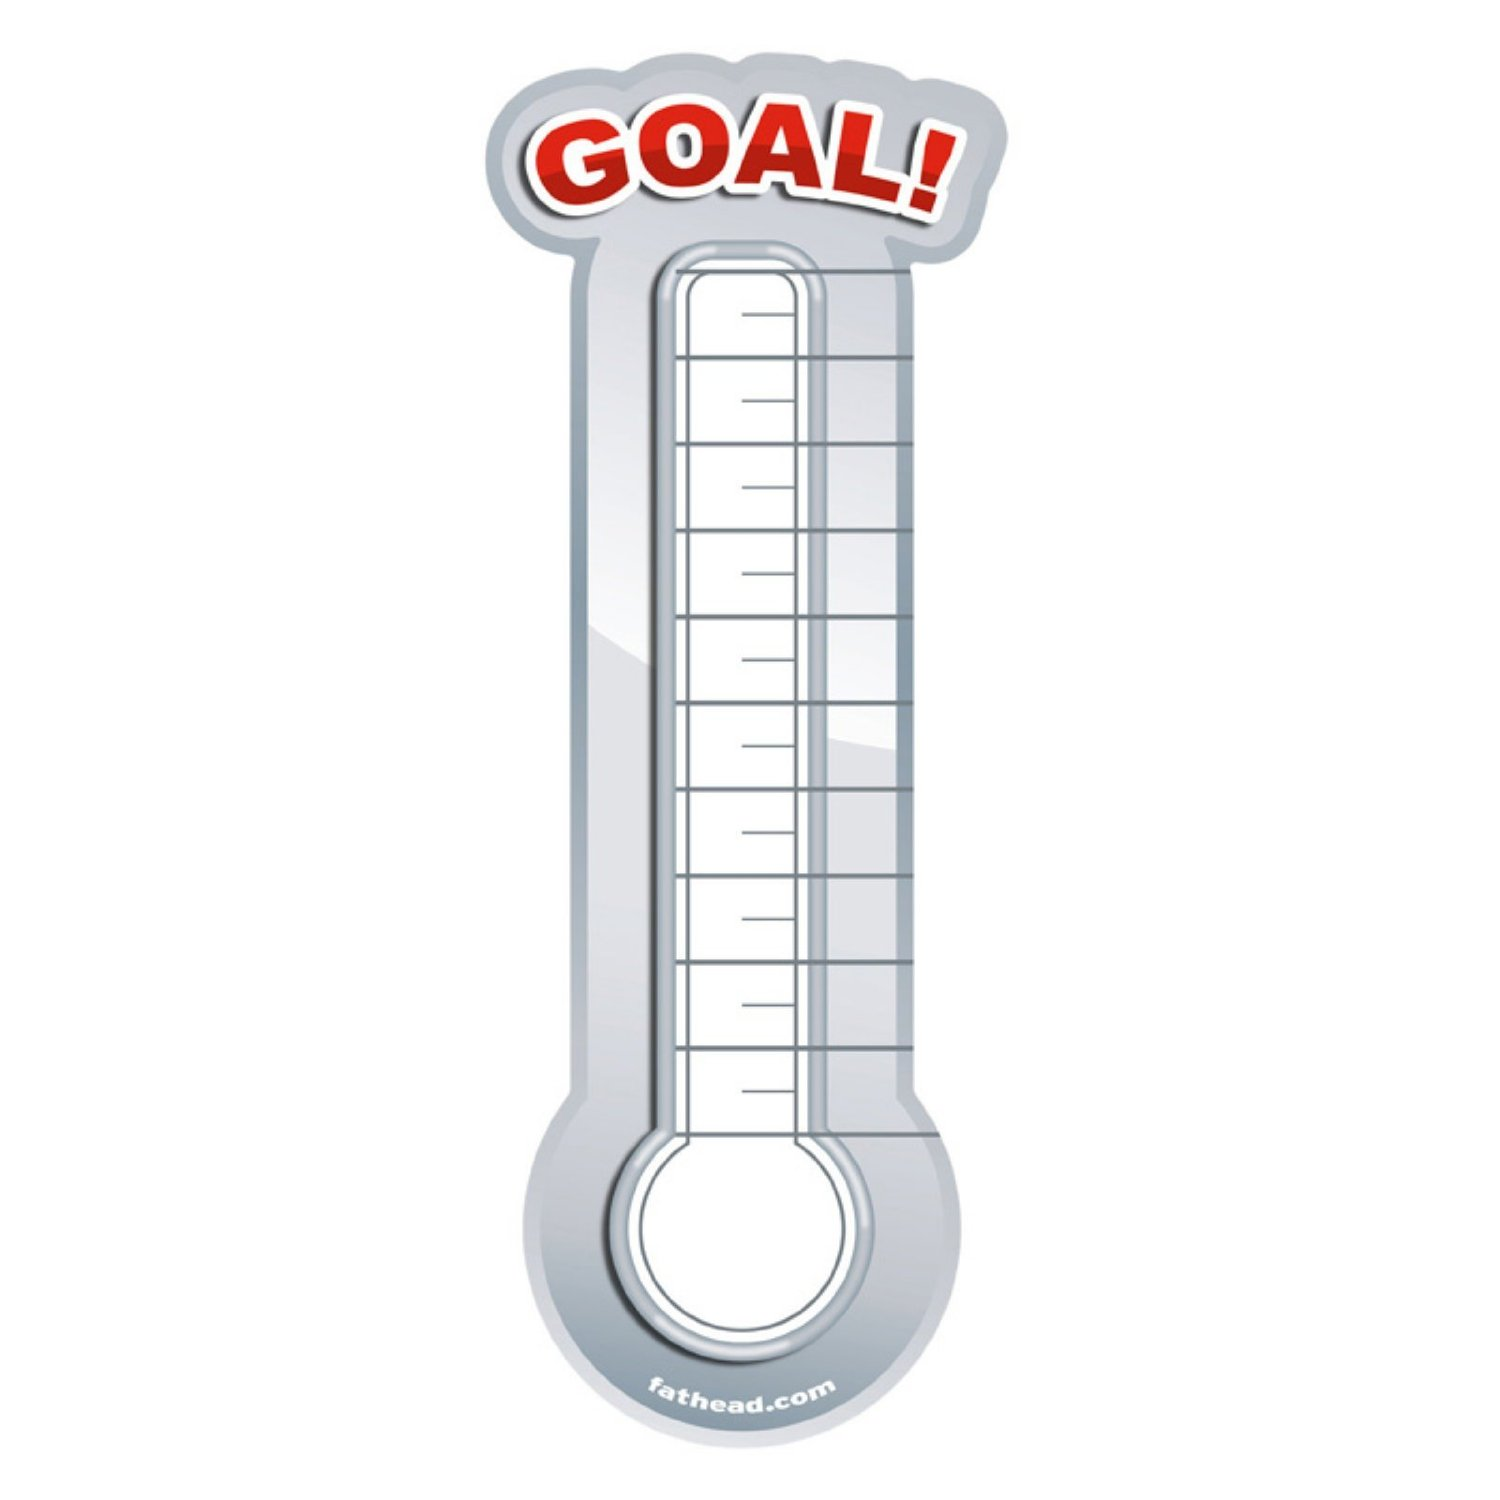 Fundraising thermometer template playbestonlinegames for Free fundraiser thermometer template